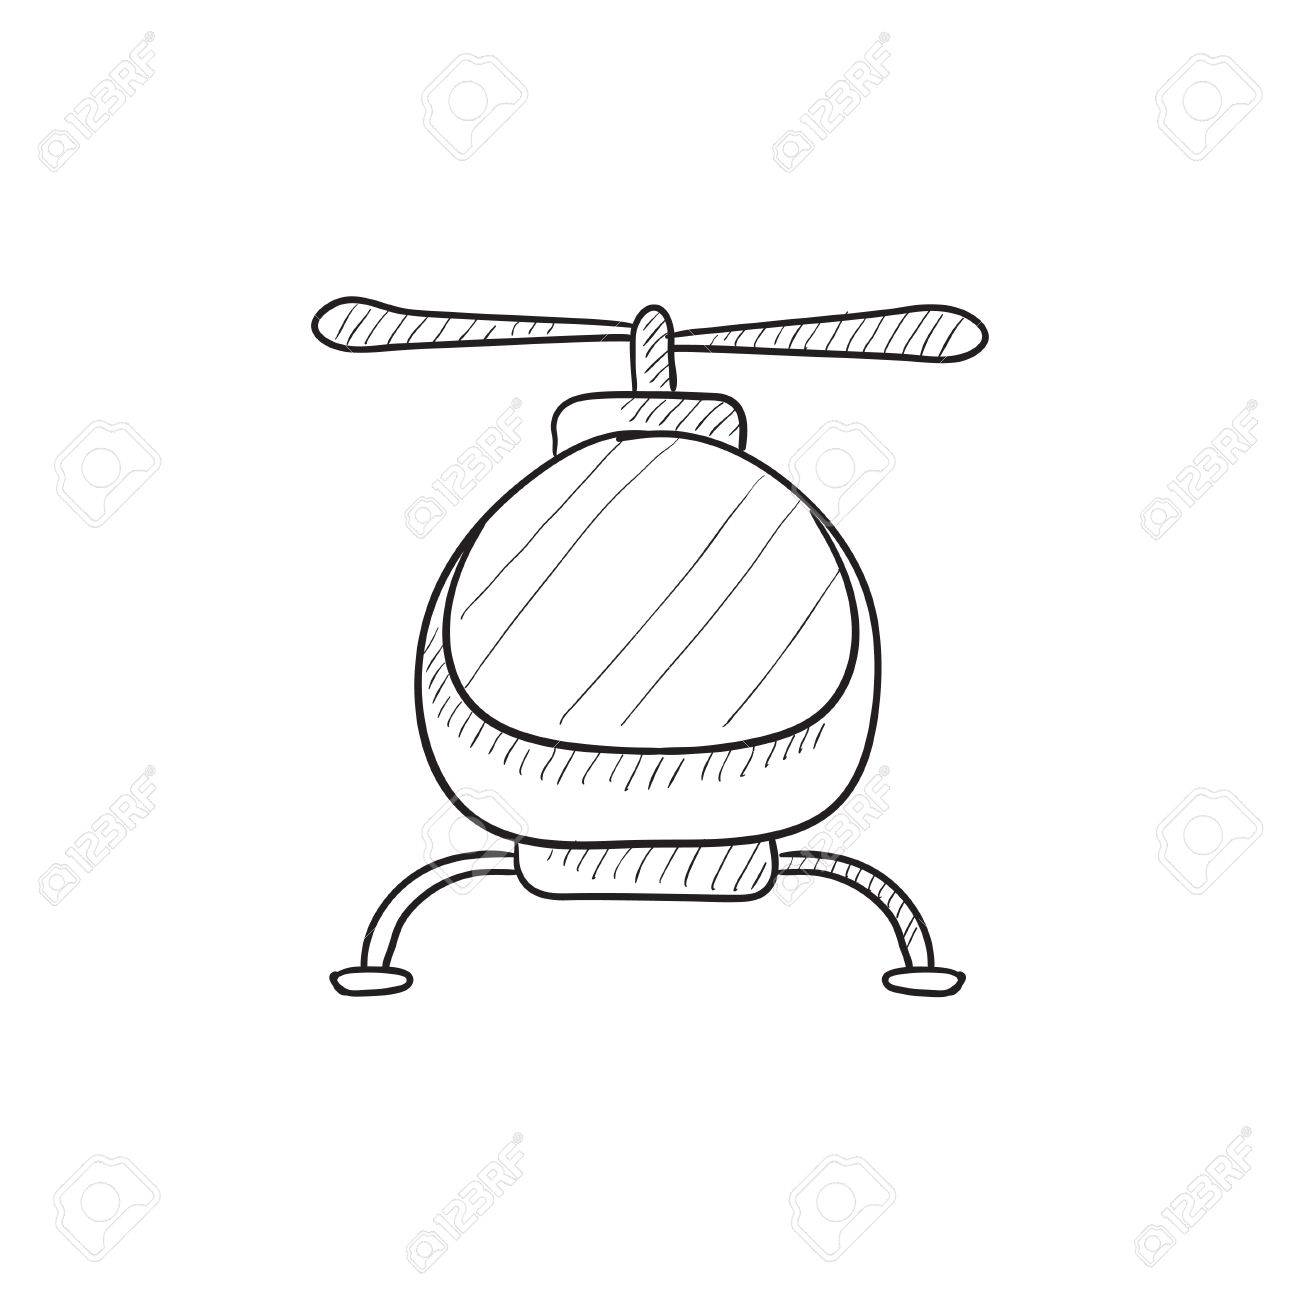 1300x1300 Helicopter Vector Sketch Icon Isolated On Background. Hand Drawn